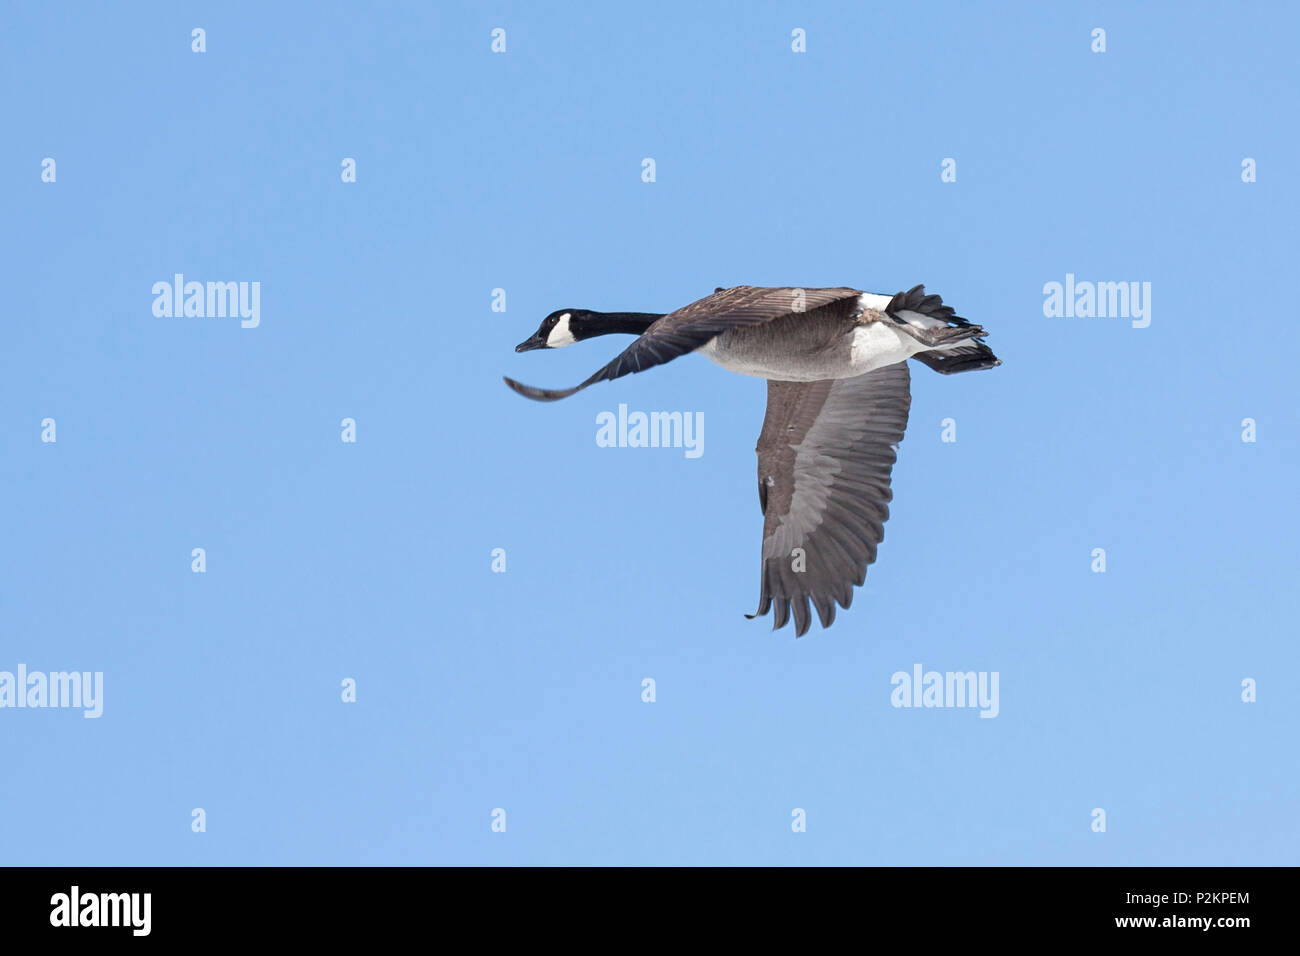 Flapping its wings, a canada goose flies across a baby blue sky.